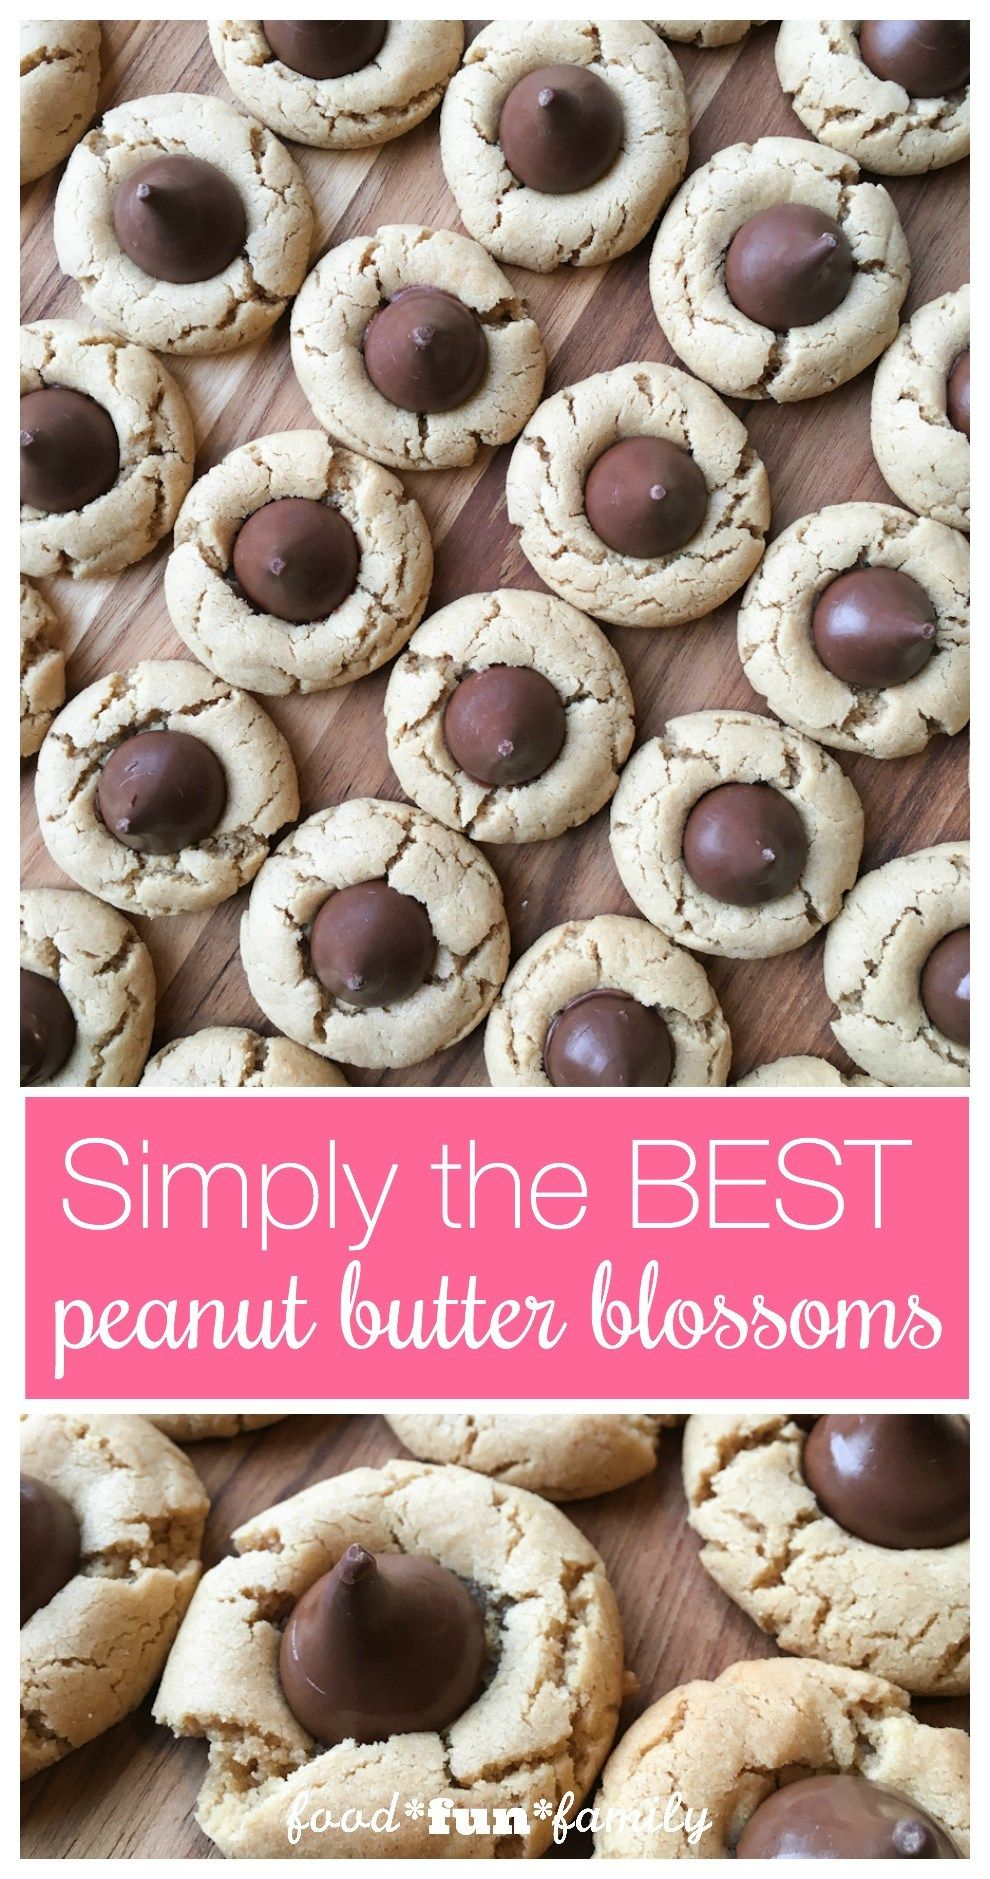 The BEST Peanut Butter Blossoms Cookies